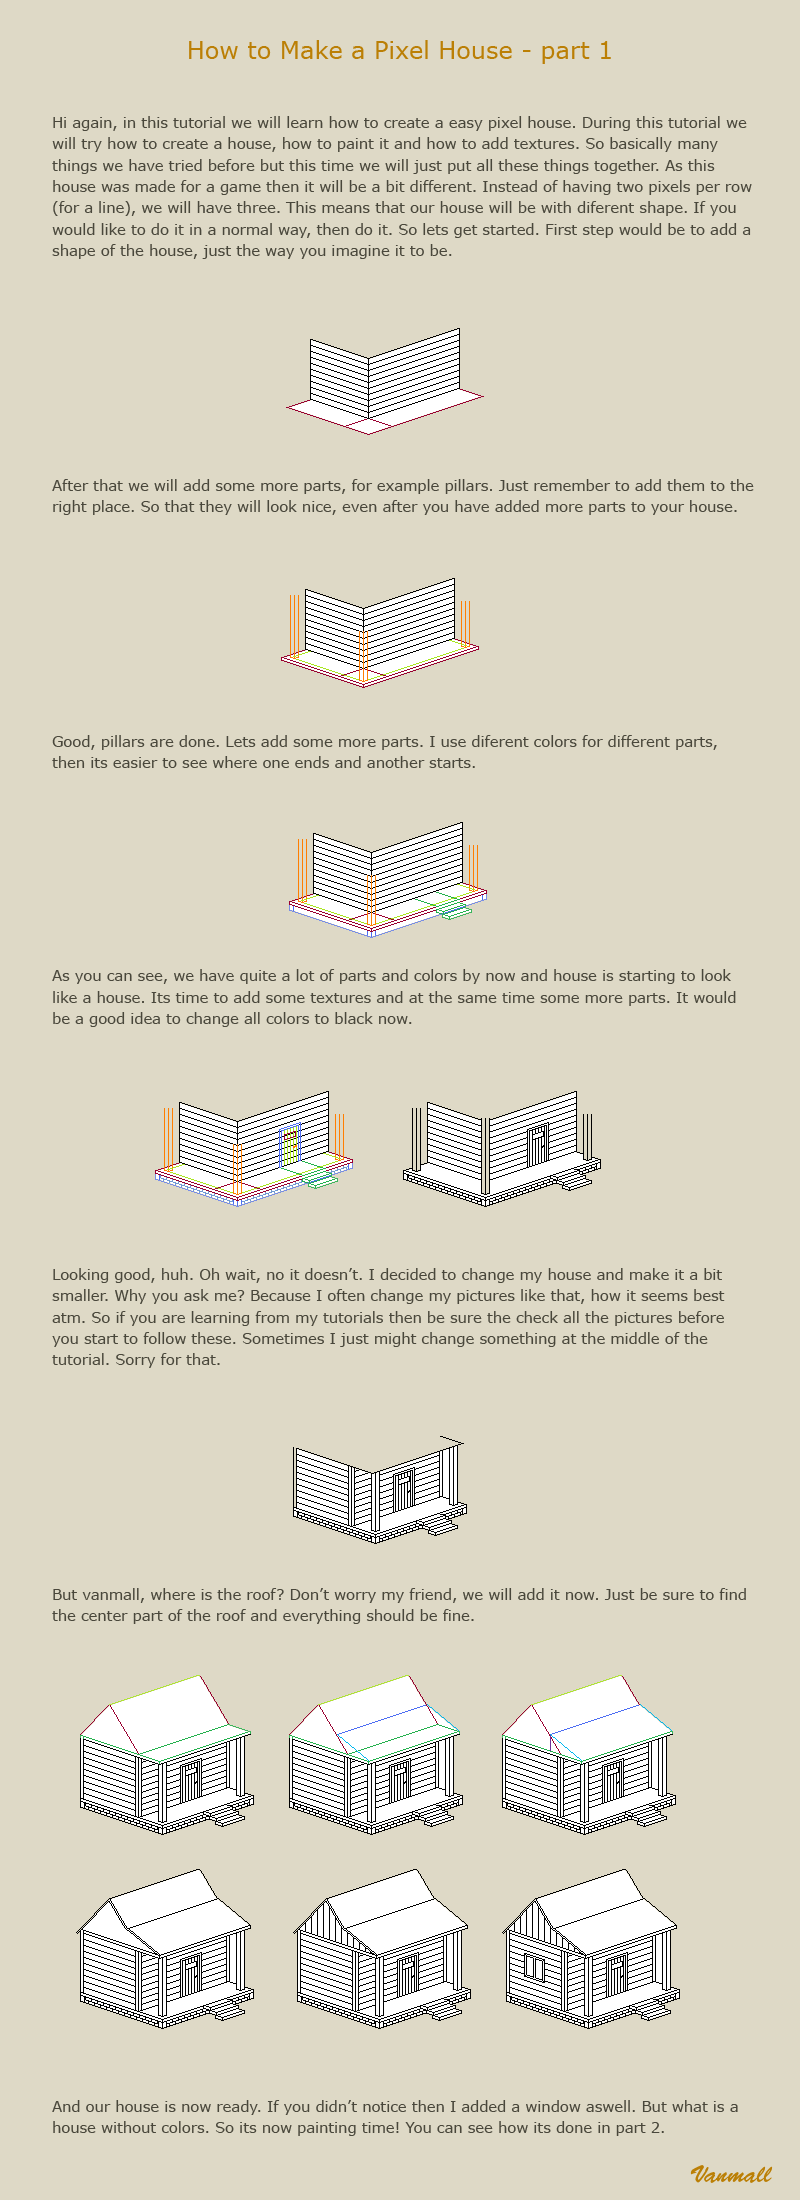 How to make a pixel house 1